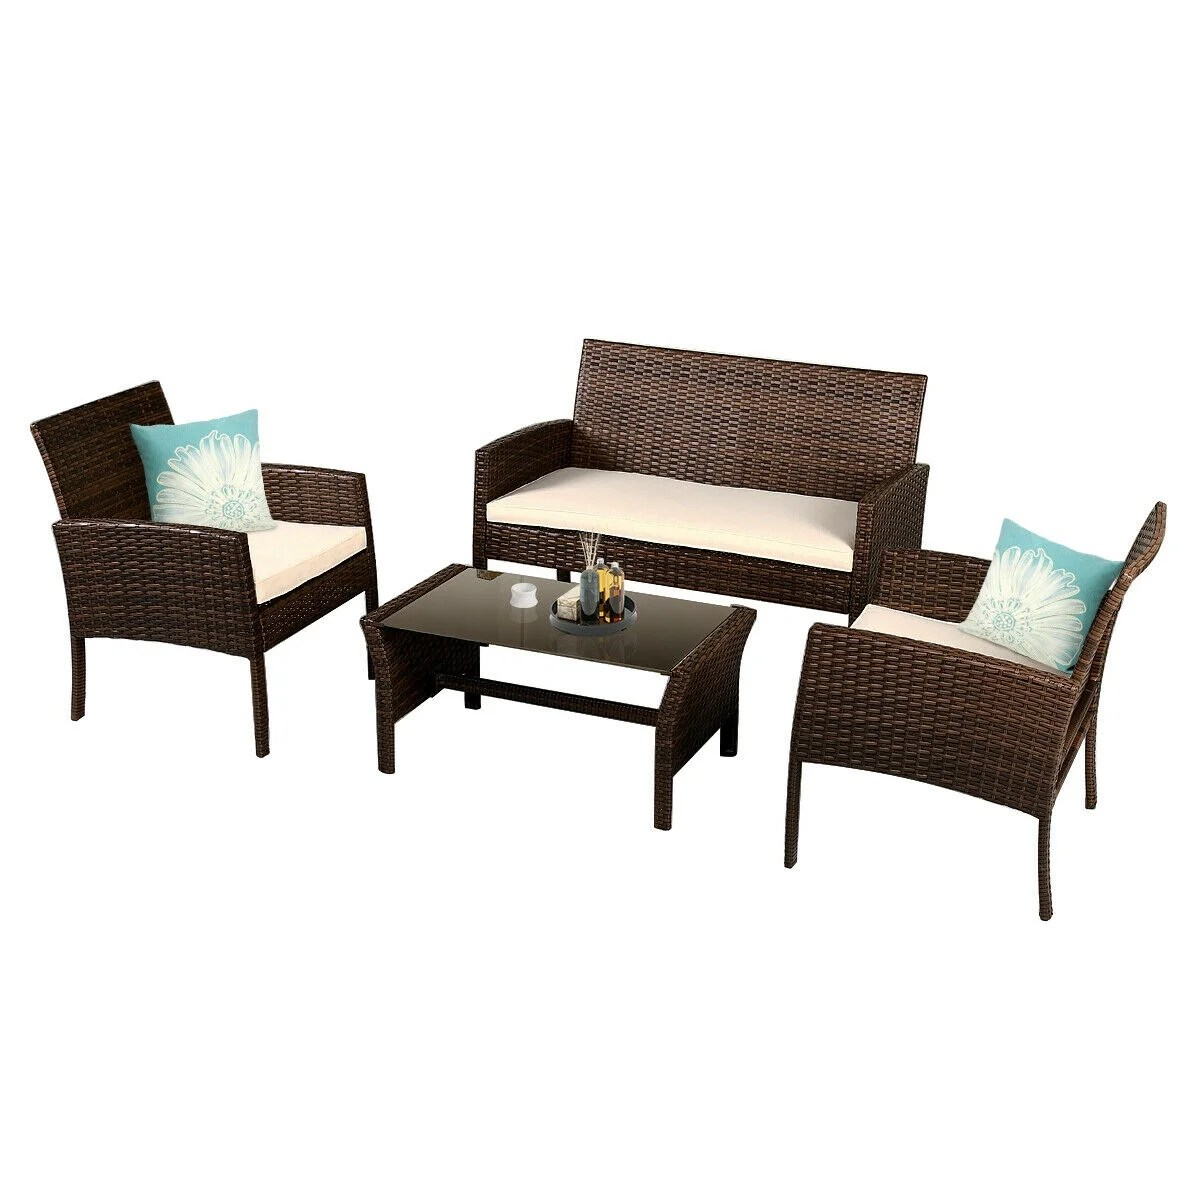 Sofa Rattan Costway 4 Pieces Patio Furniture Wicker Rattan Sofa Set Garden Coffee Table As Pic